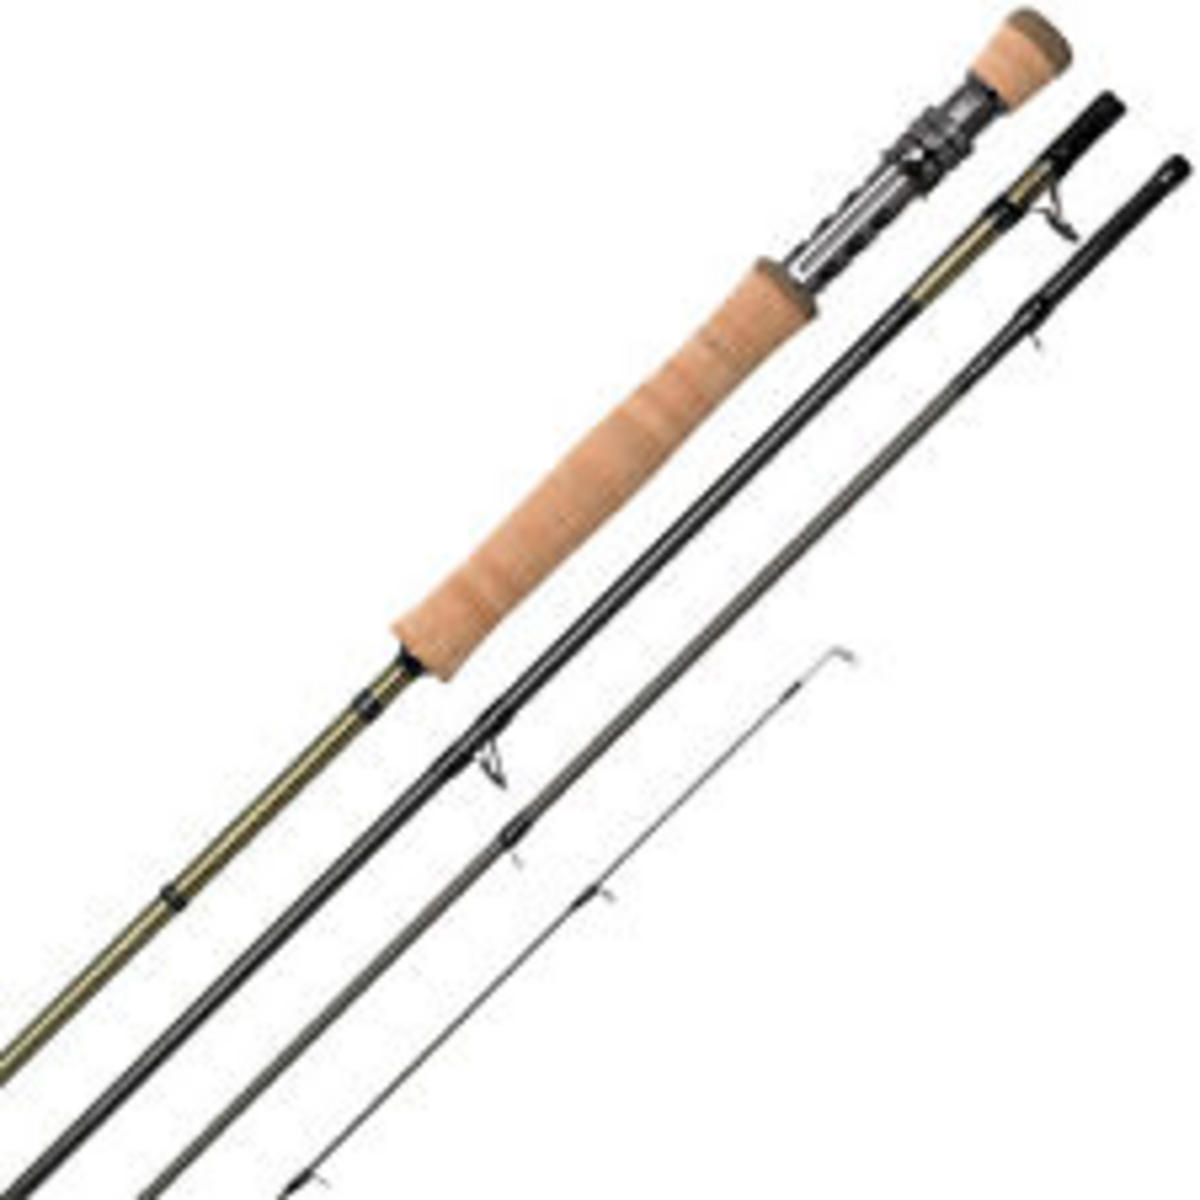 EX DISPLAY DAIWA AIRITY 11'3'' TROUT FLY ROD AX45LSF11378-AU